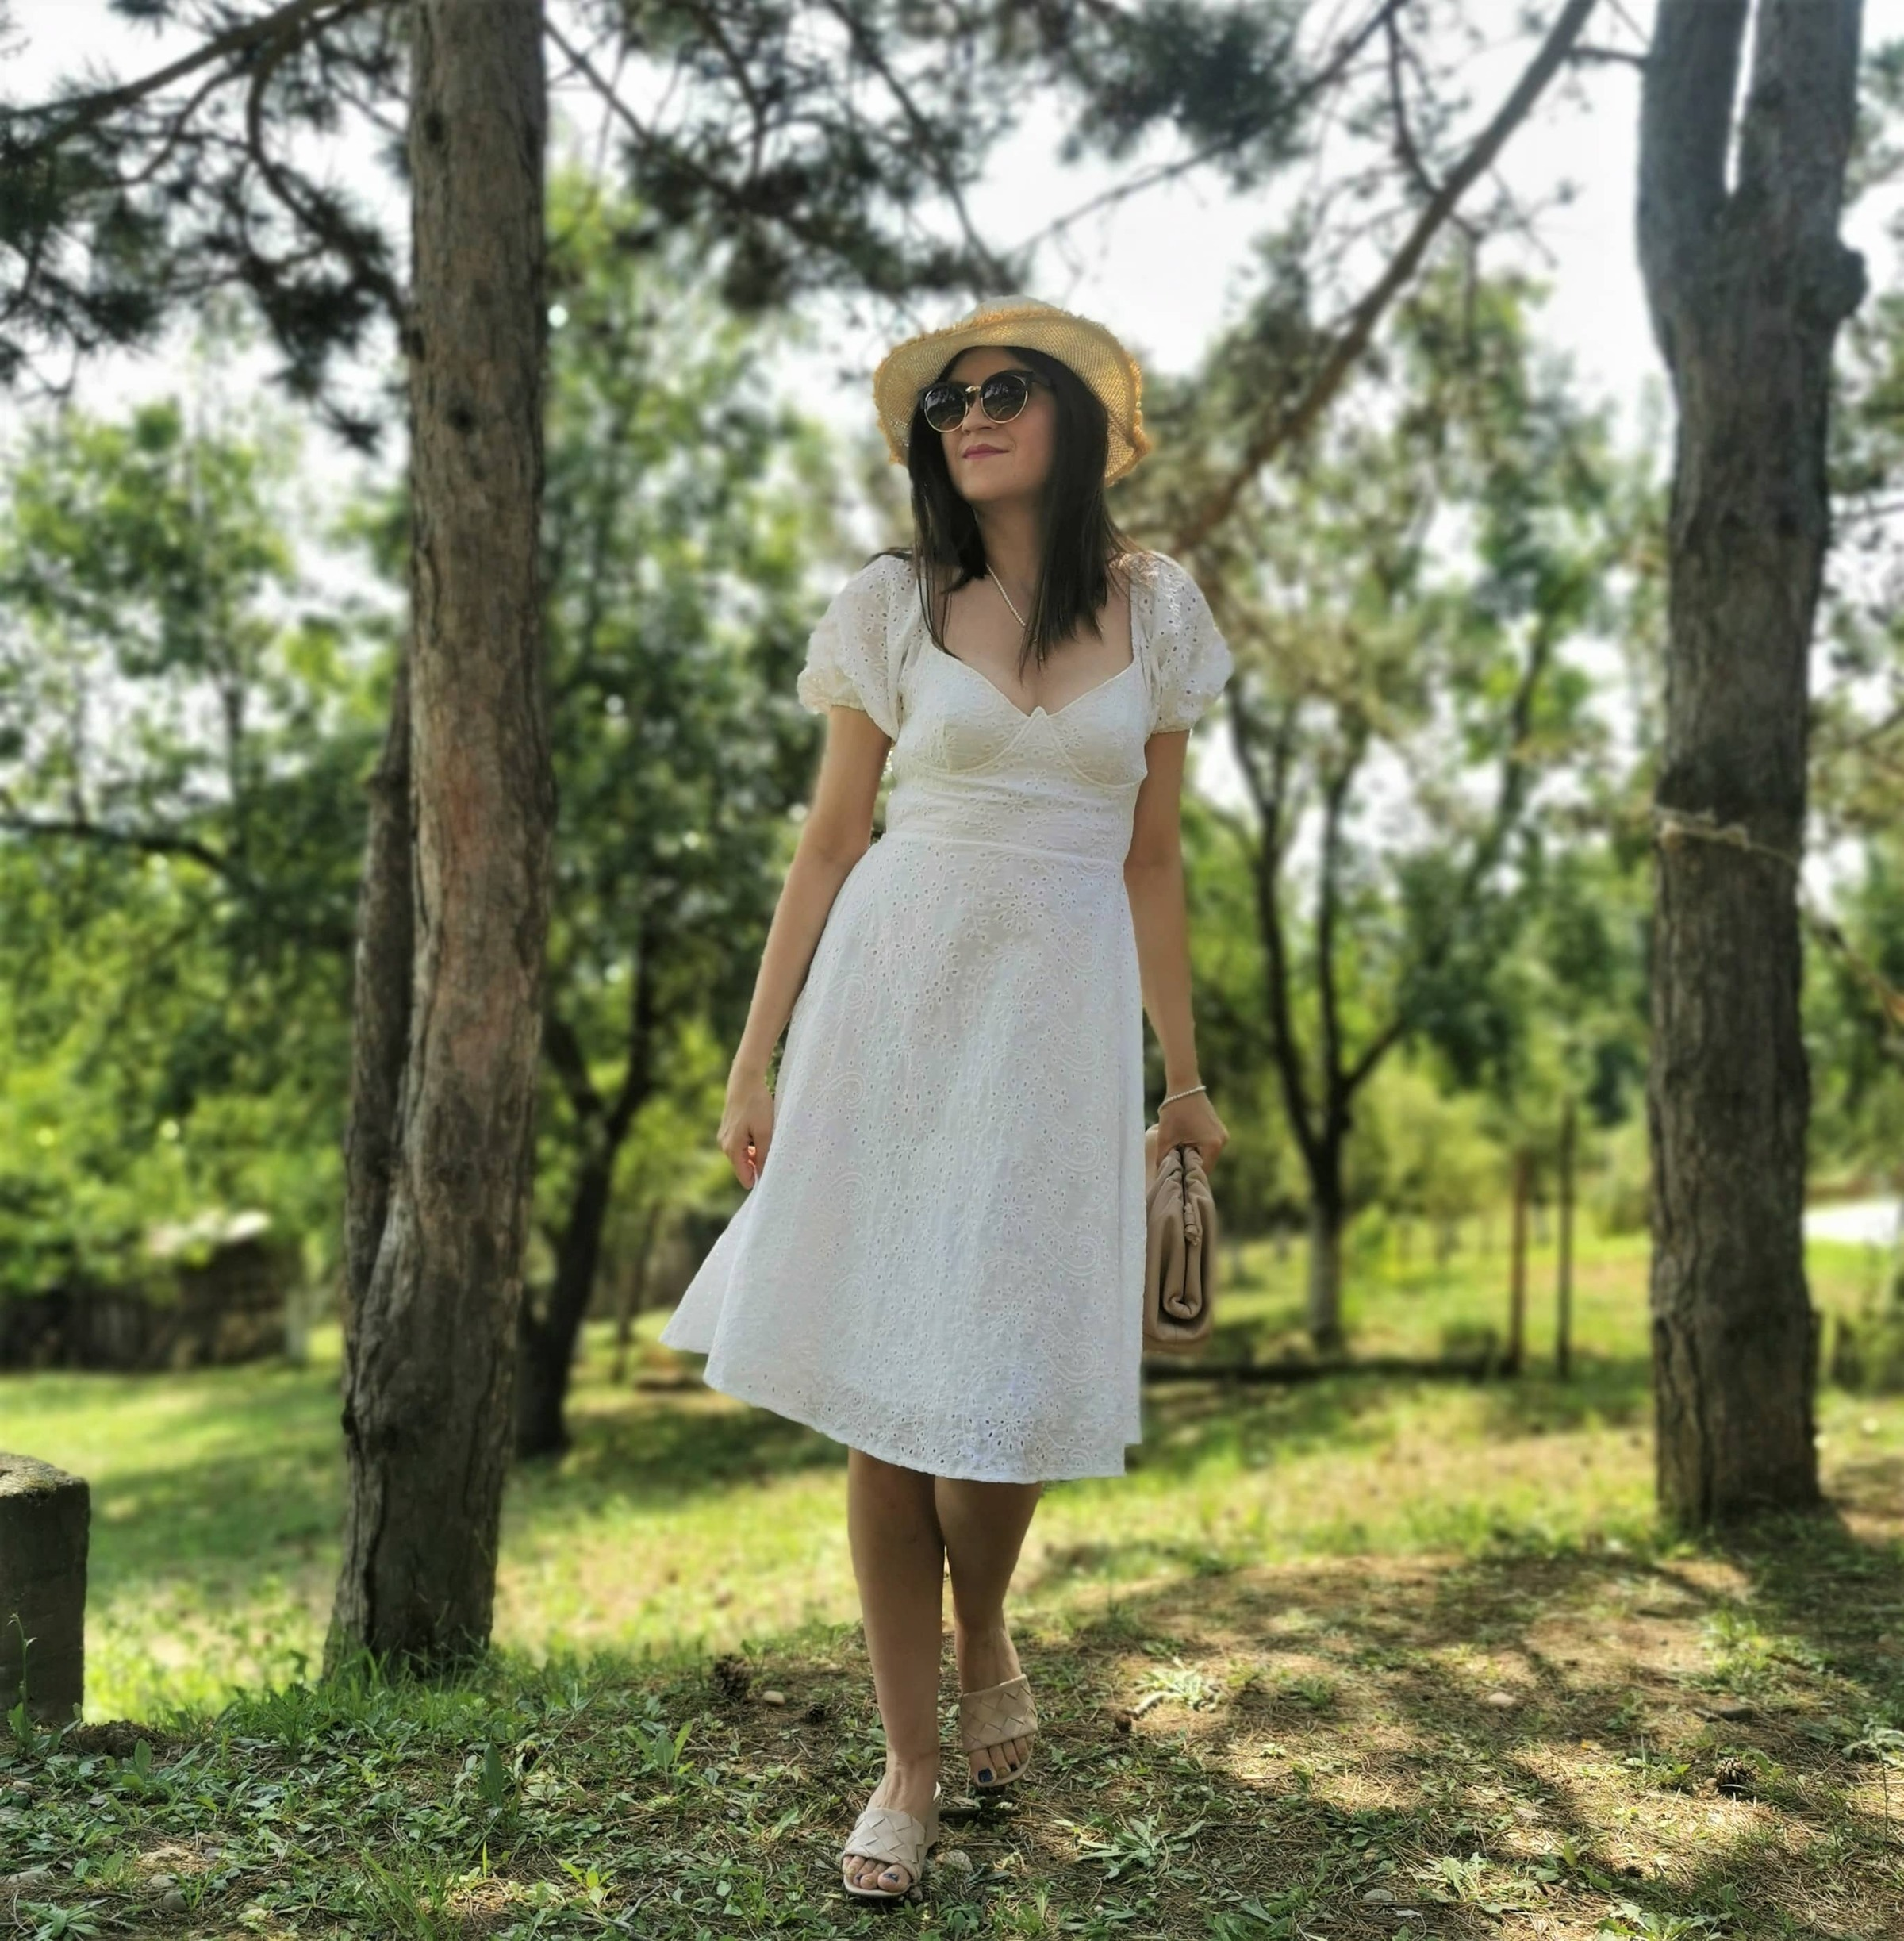 fave summer items: white dress, hat. mules...